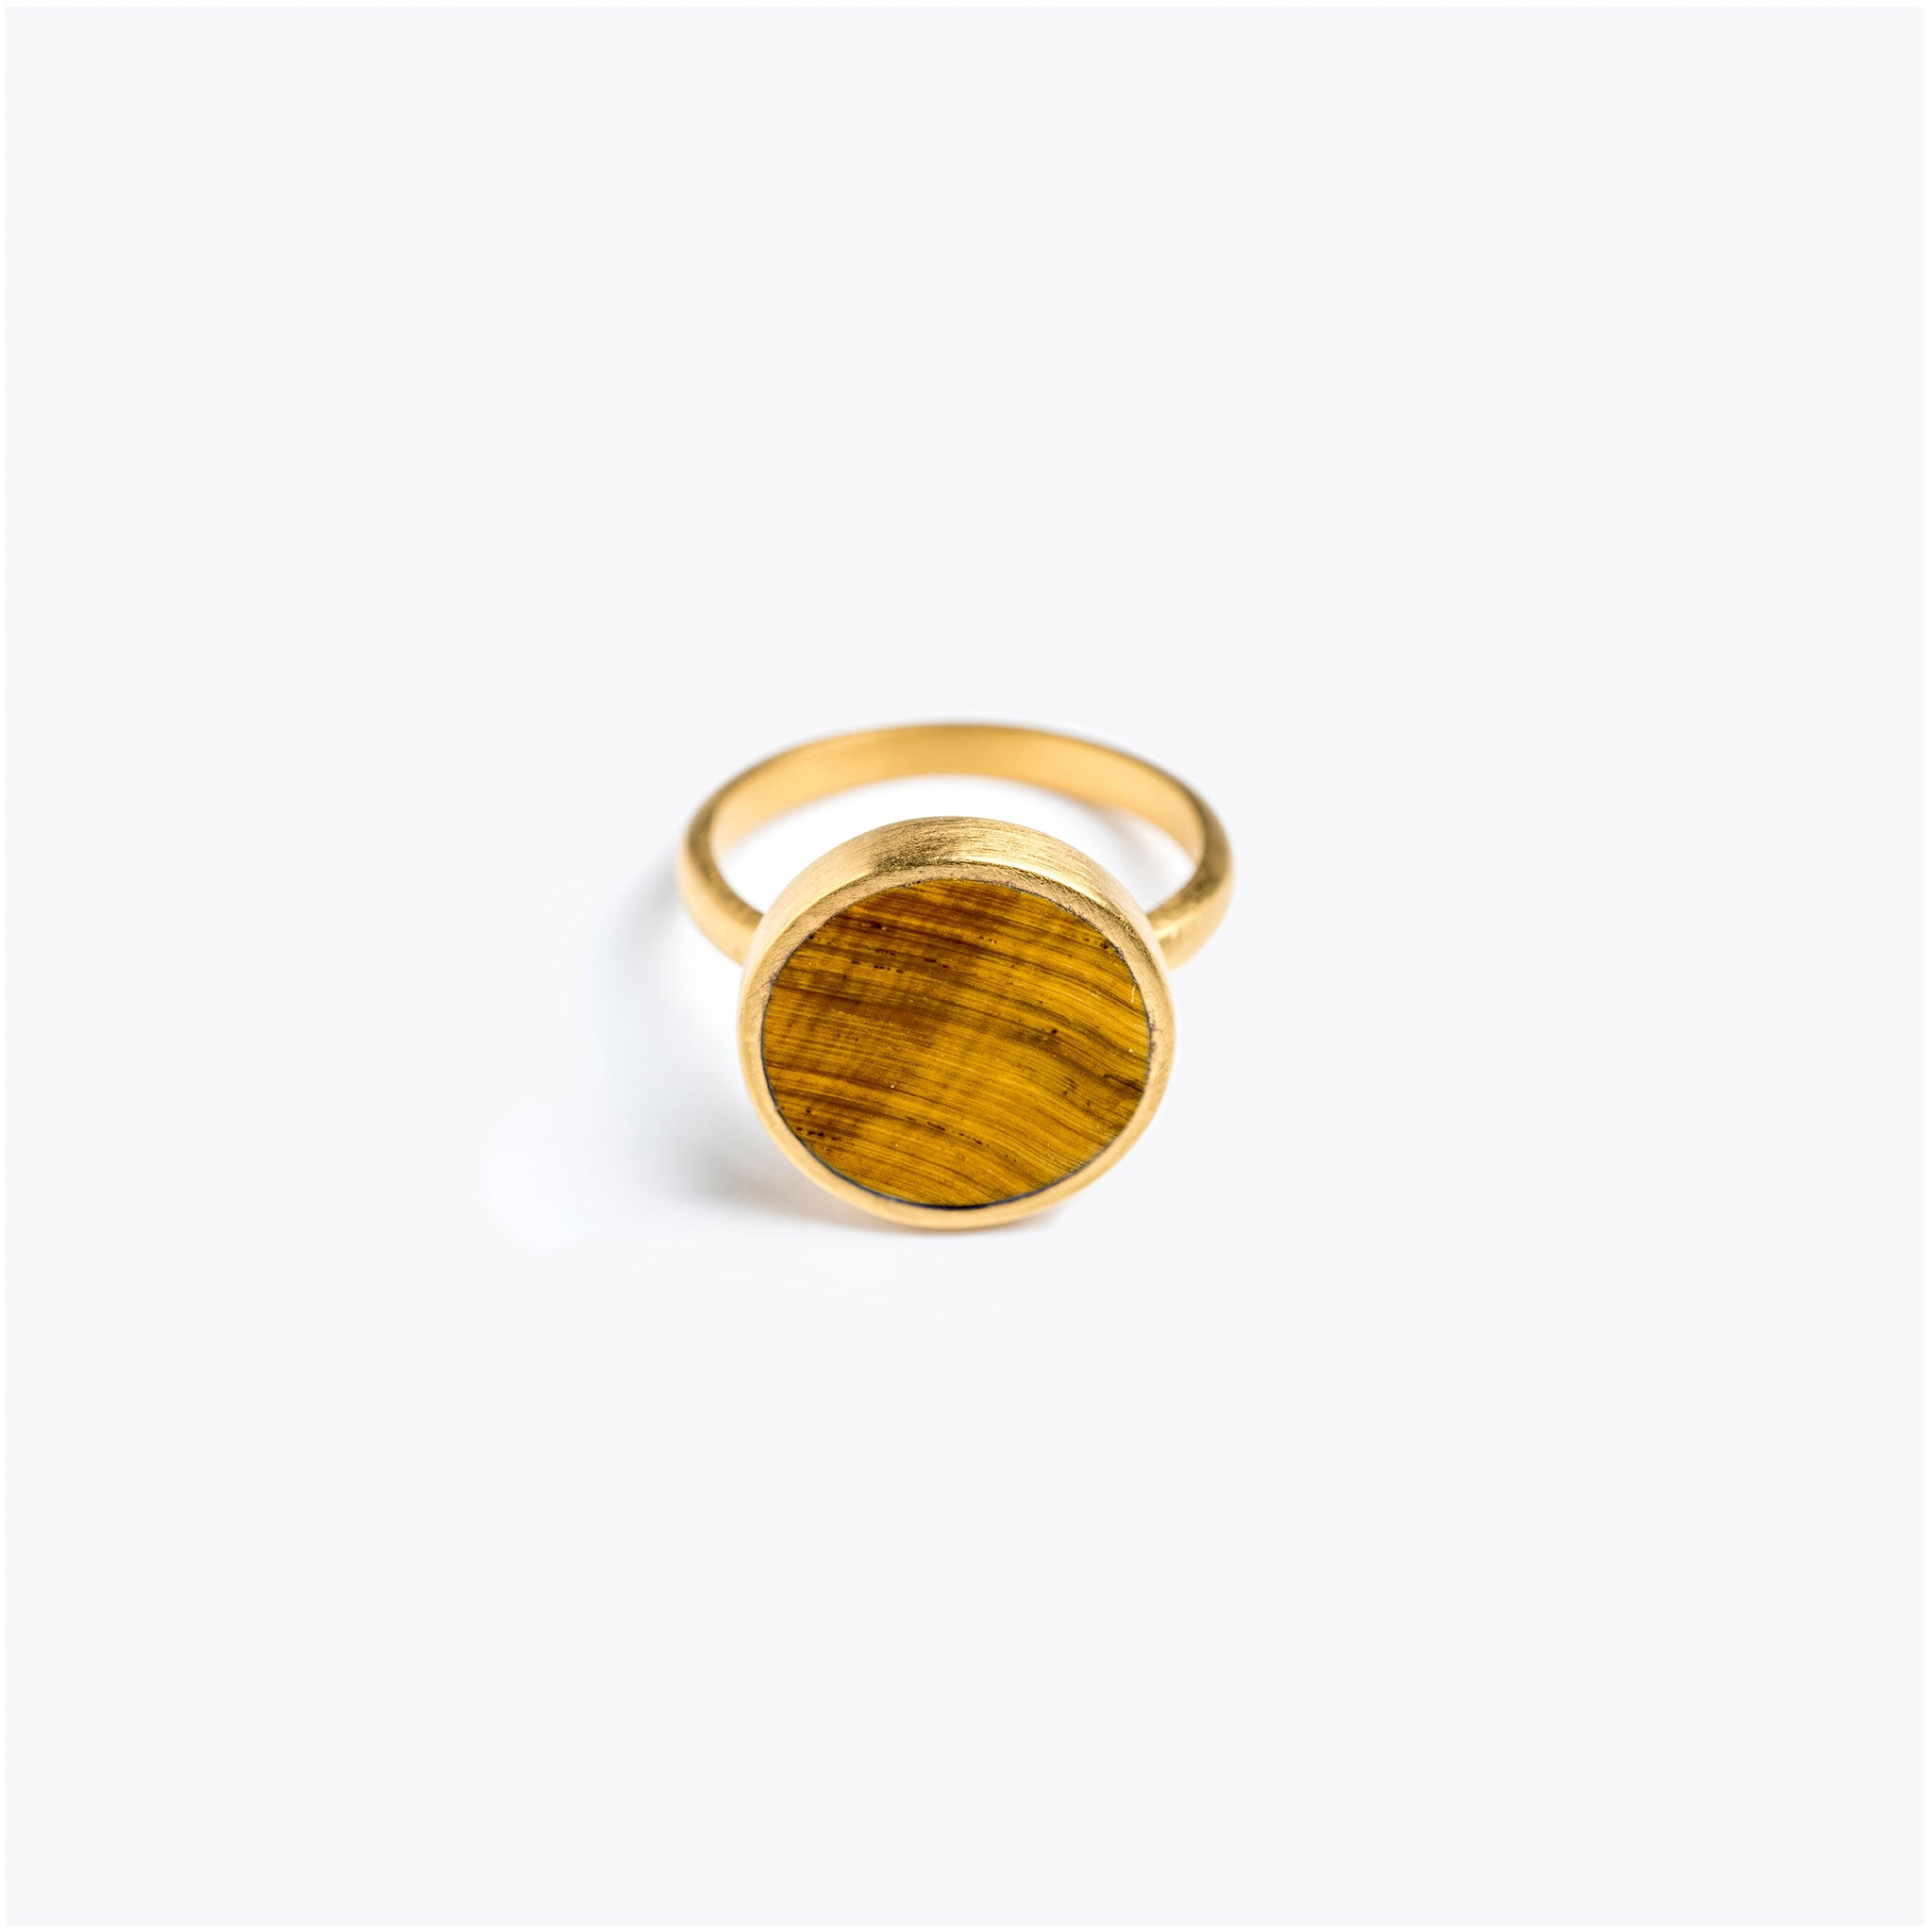 Wanderlust Life semi precious tiger eye gemstone gold ring. Gold band ring with large tigers eye gemstone slice. Wanderlust Life jewellery, designed in the UK.